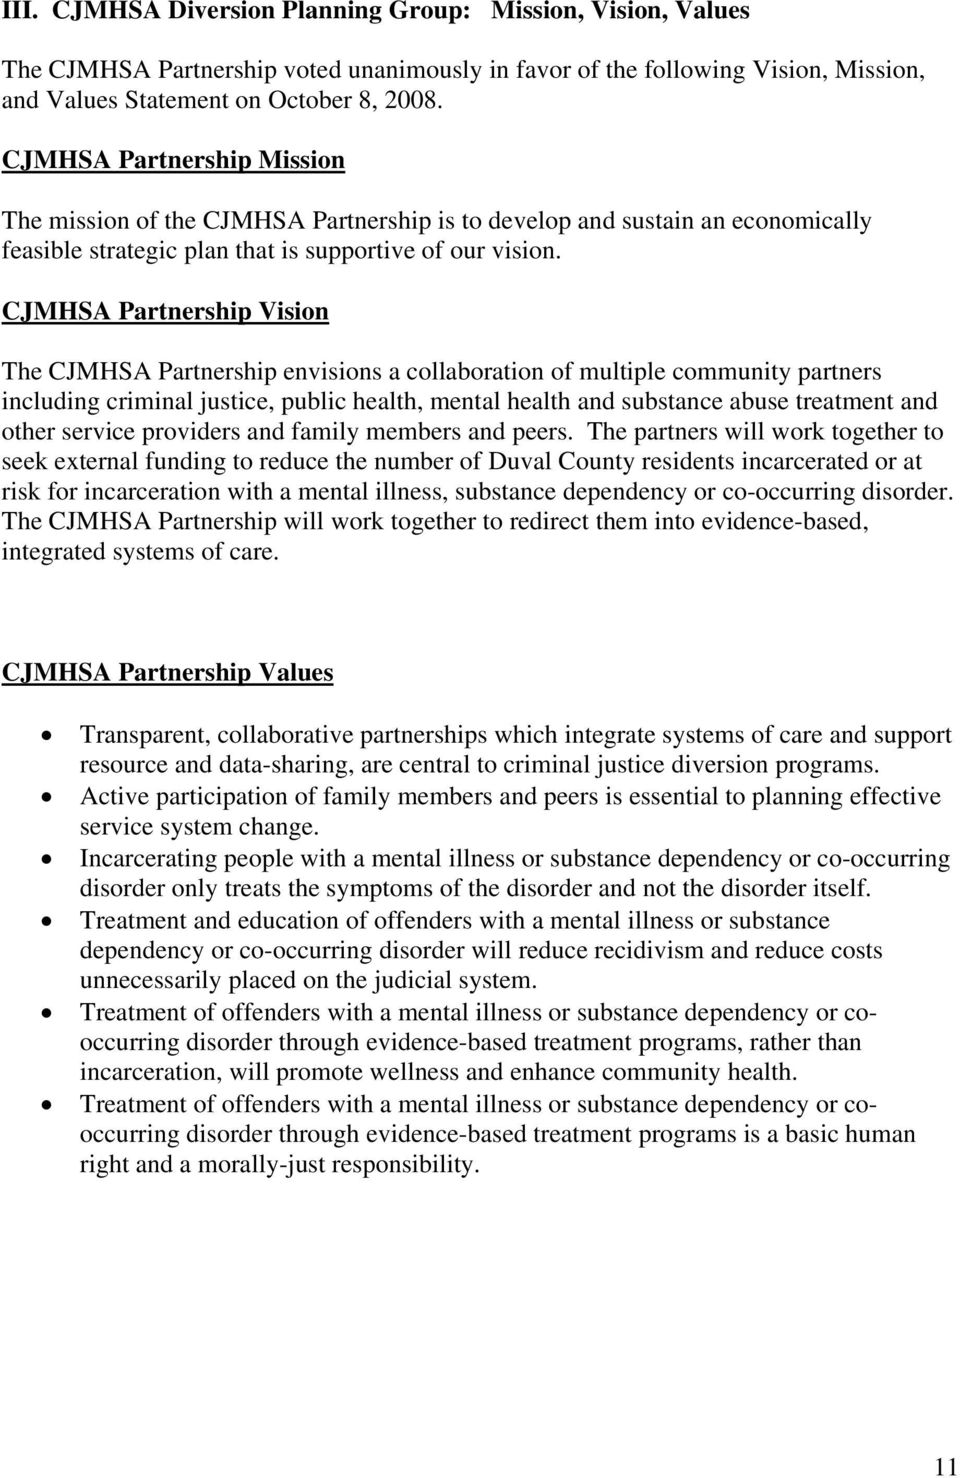 CJMHSA Partnership Vision The CJMHSA Partnership envisions a collaboration of multiple community partners including criminal justice, public health, mental health and substance abuse treatment and